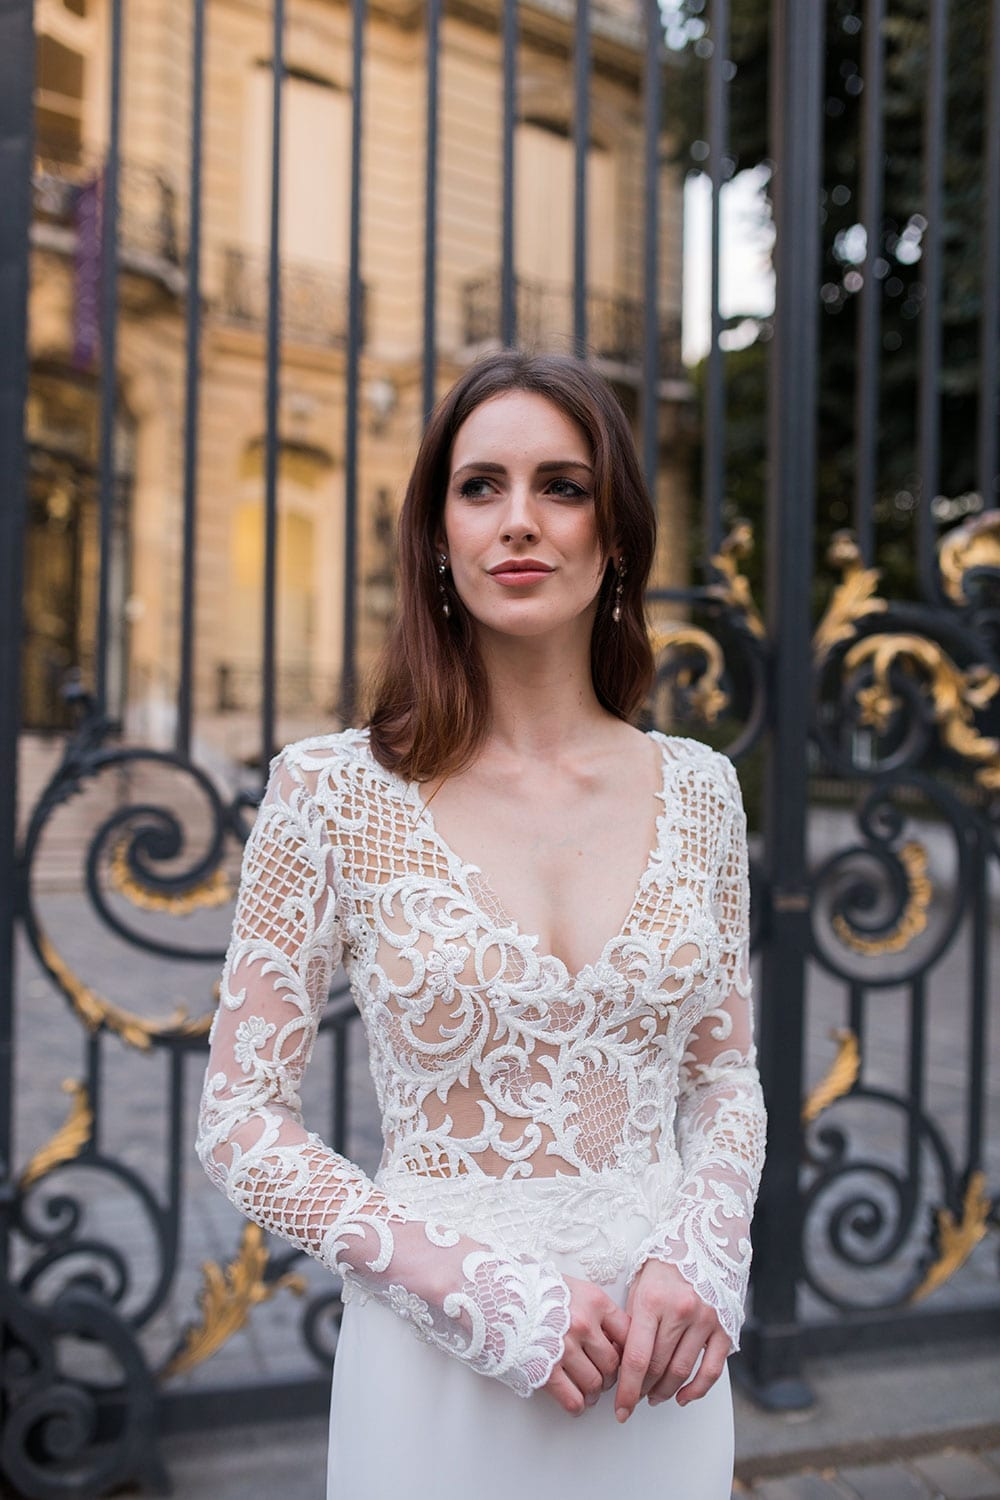 Model wearing Vinka Design Katrina Wedding Dress, a Stunning wedding dress sculptured with richly beaded lace . V neck gown with long fitted sleeves, a tailored skirt that fits softly over the hipline, and a beautiful train. Worn infront of gate in Paris.